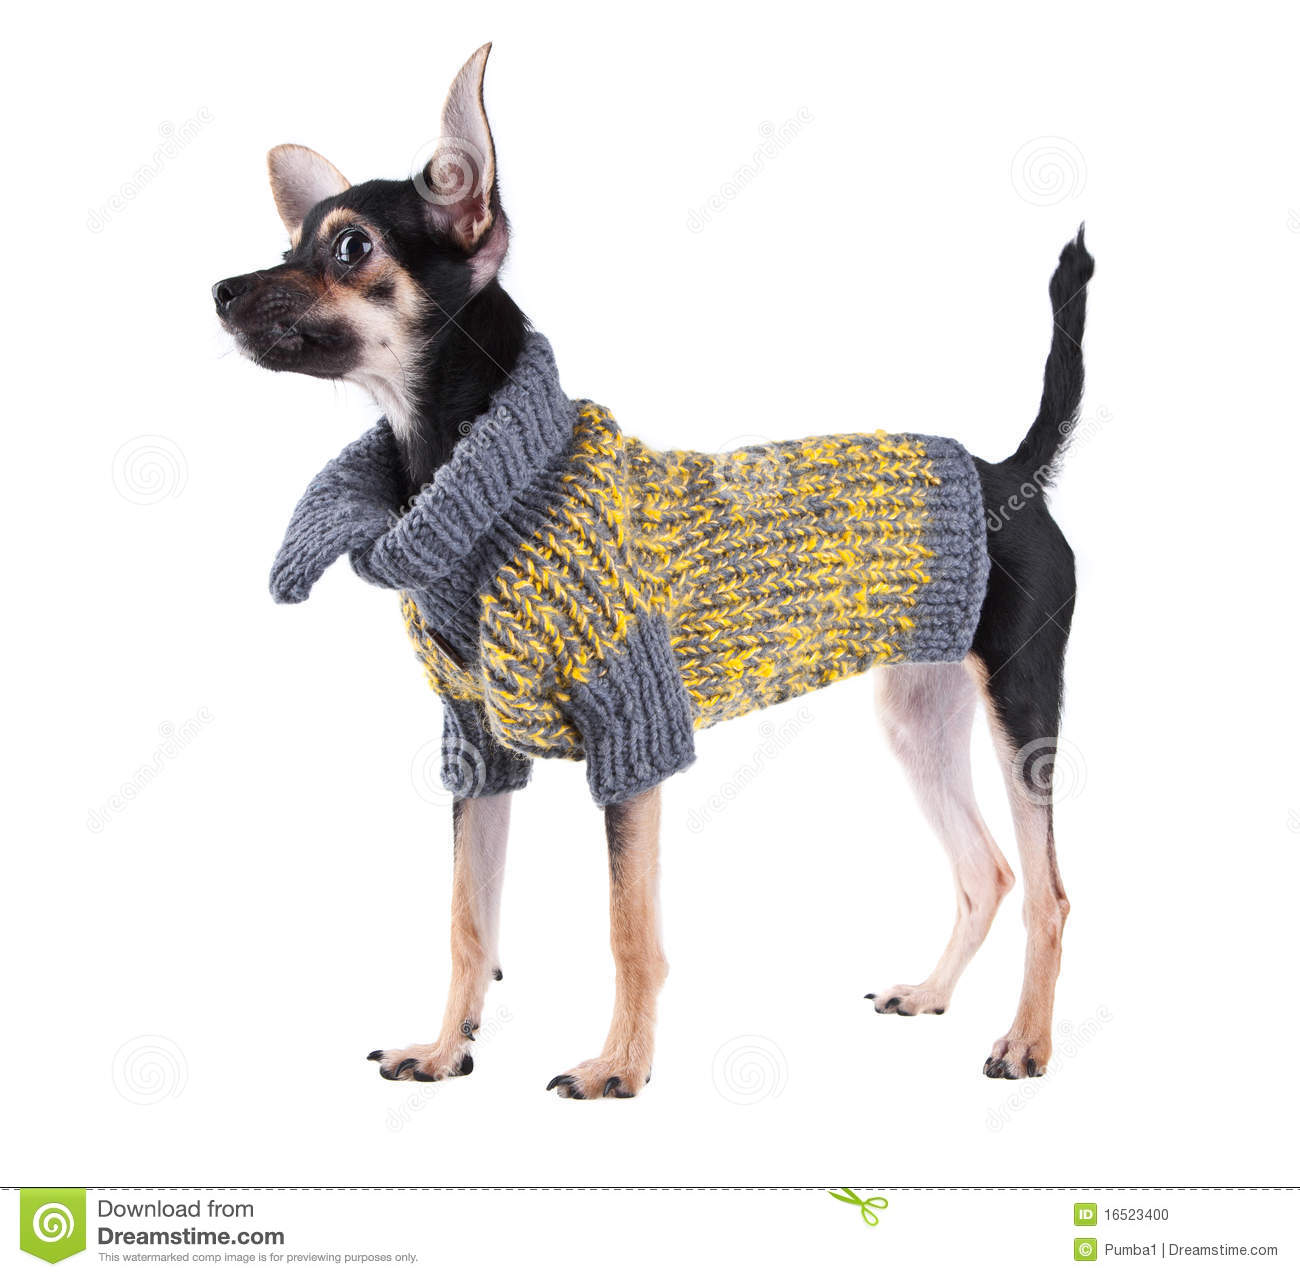 Toy Terrier Small Dogs : Small dog toy terrier in clothes stock photo image